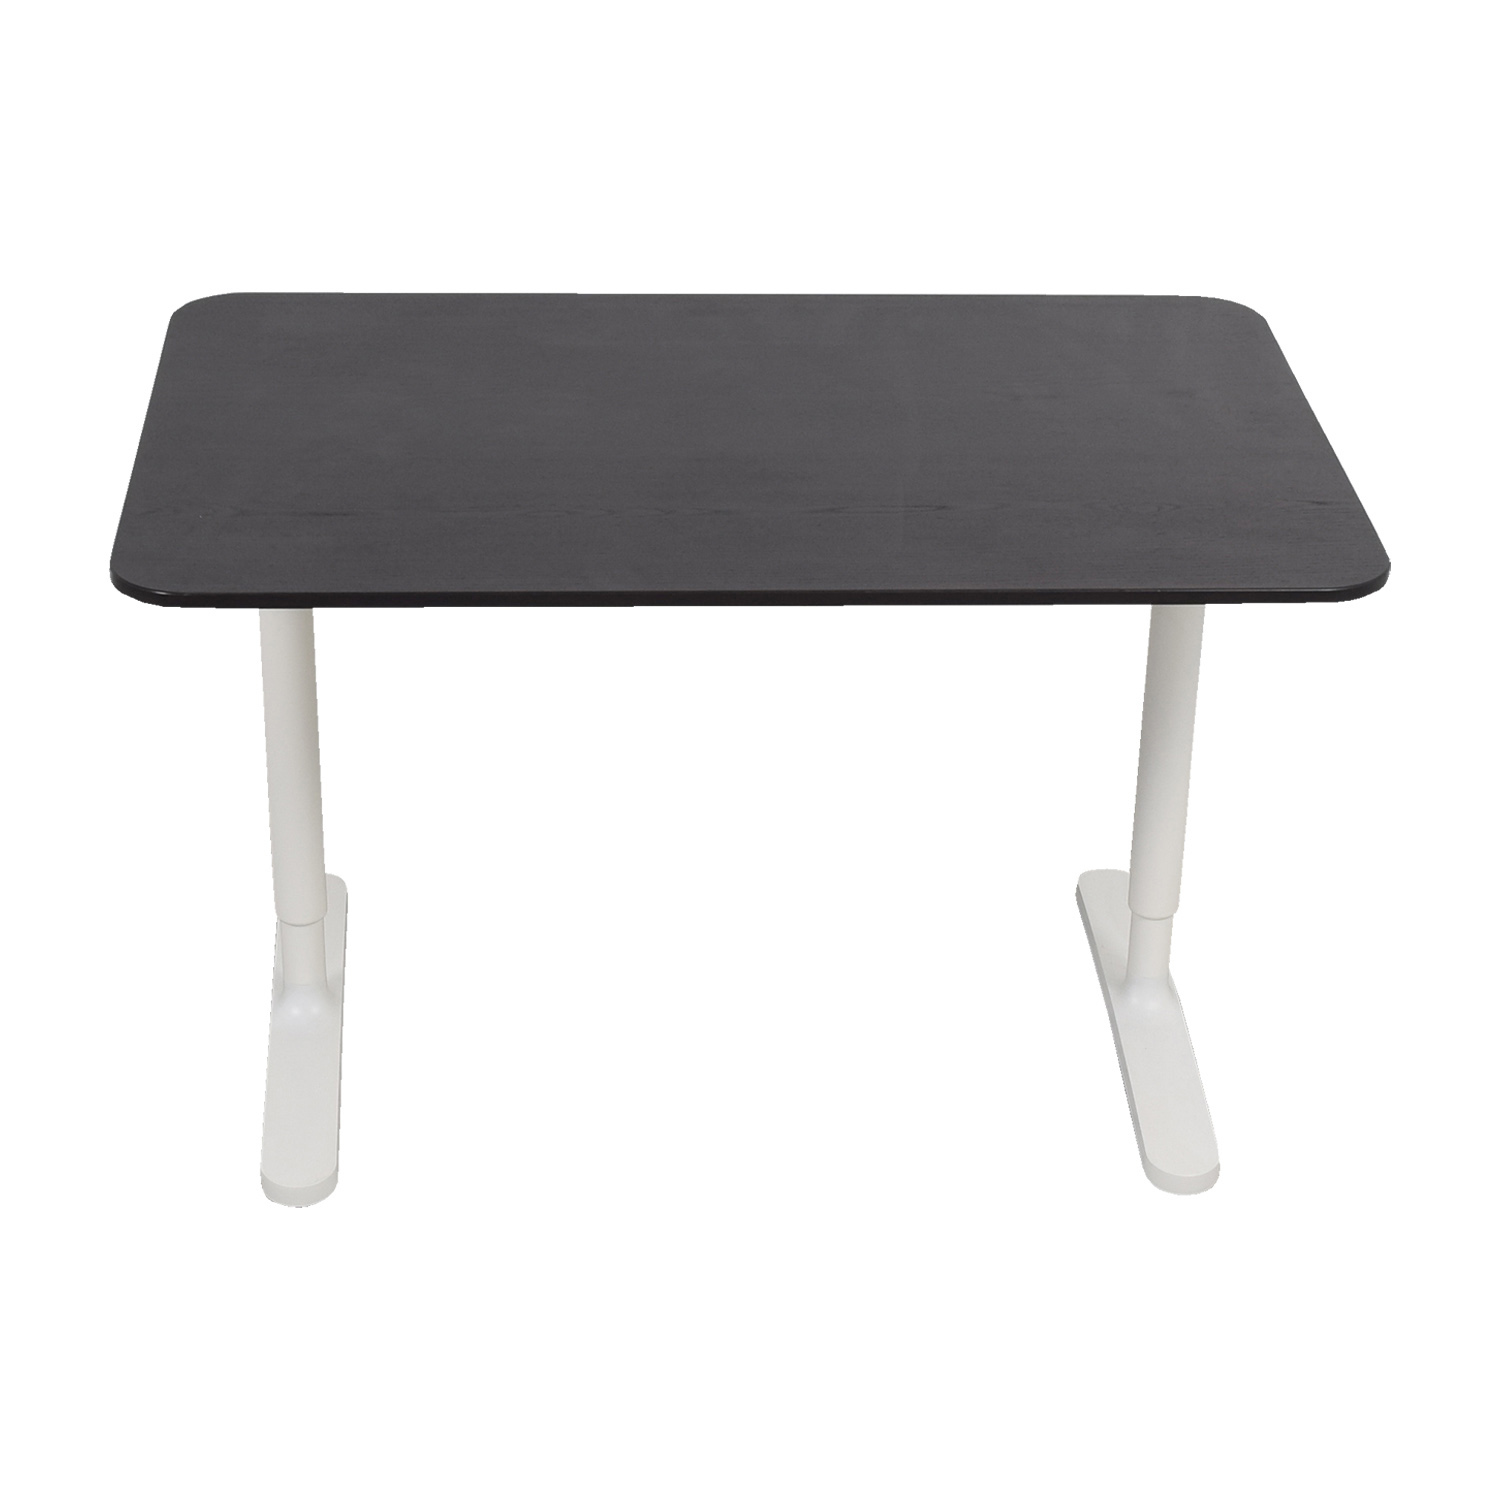 IKEA IKEA Bekant Adjustable Black and White Desk discount